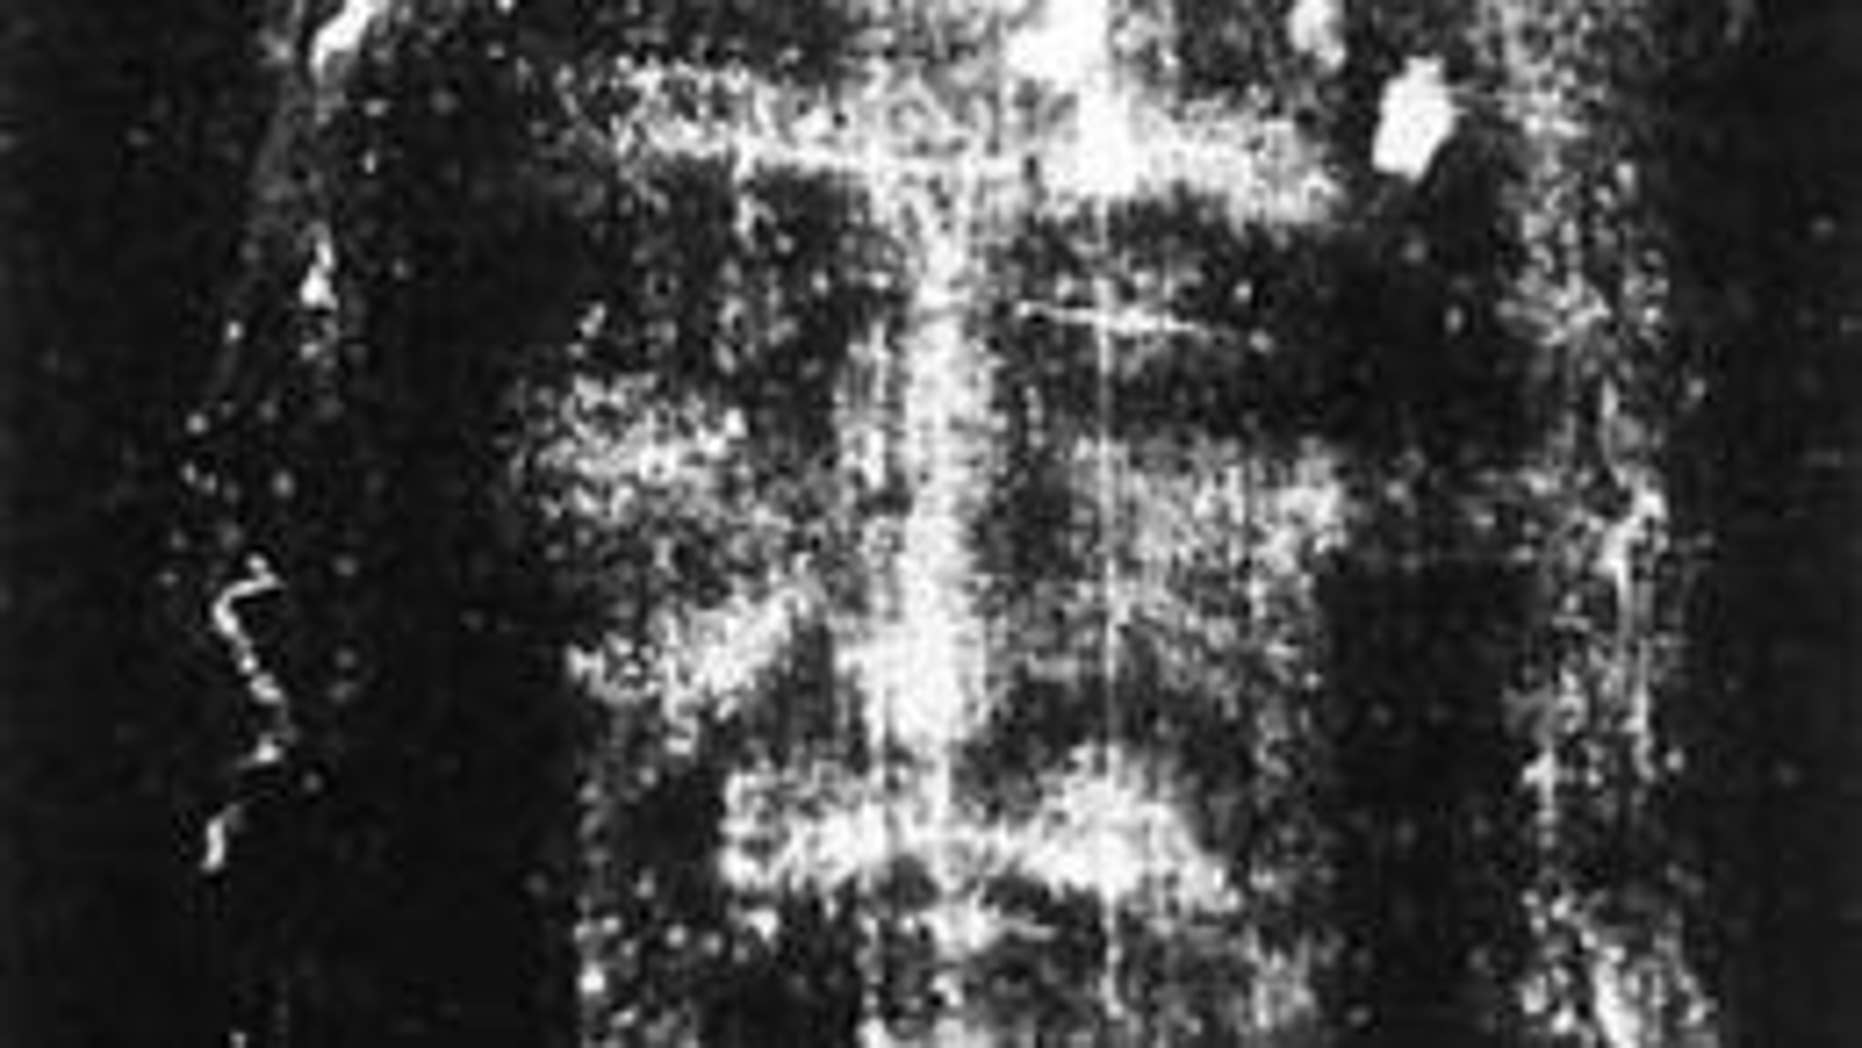 Radiocarbon dating and the shroud of turin debate schedule